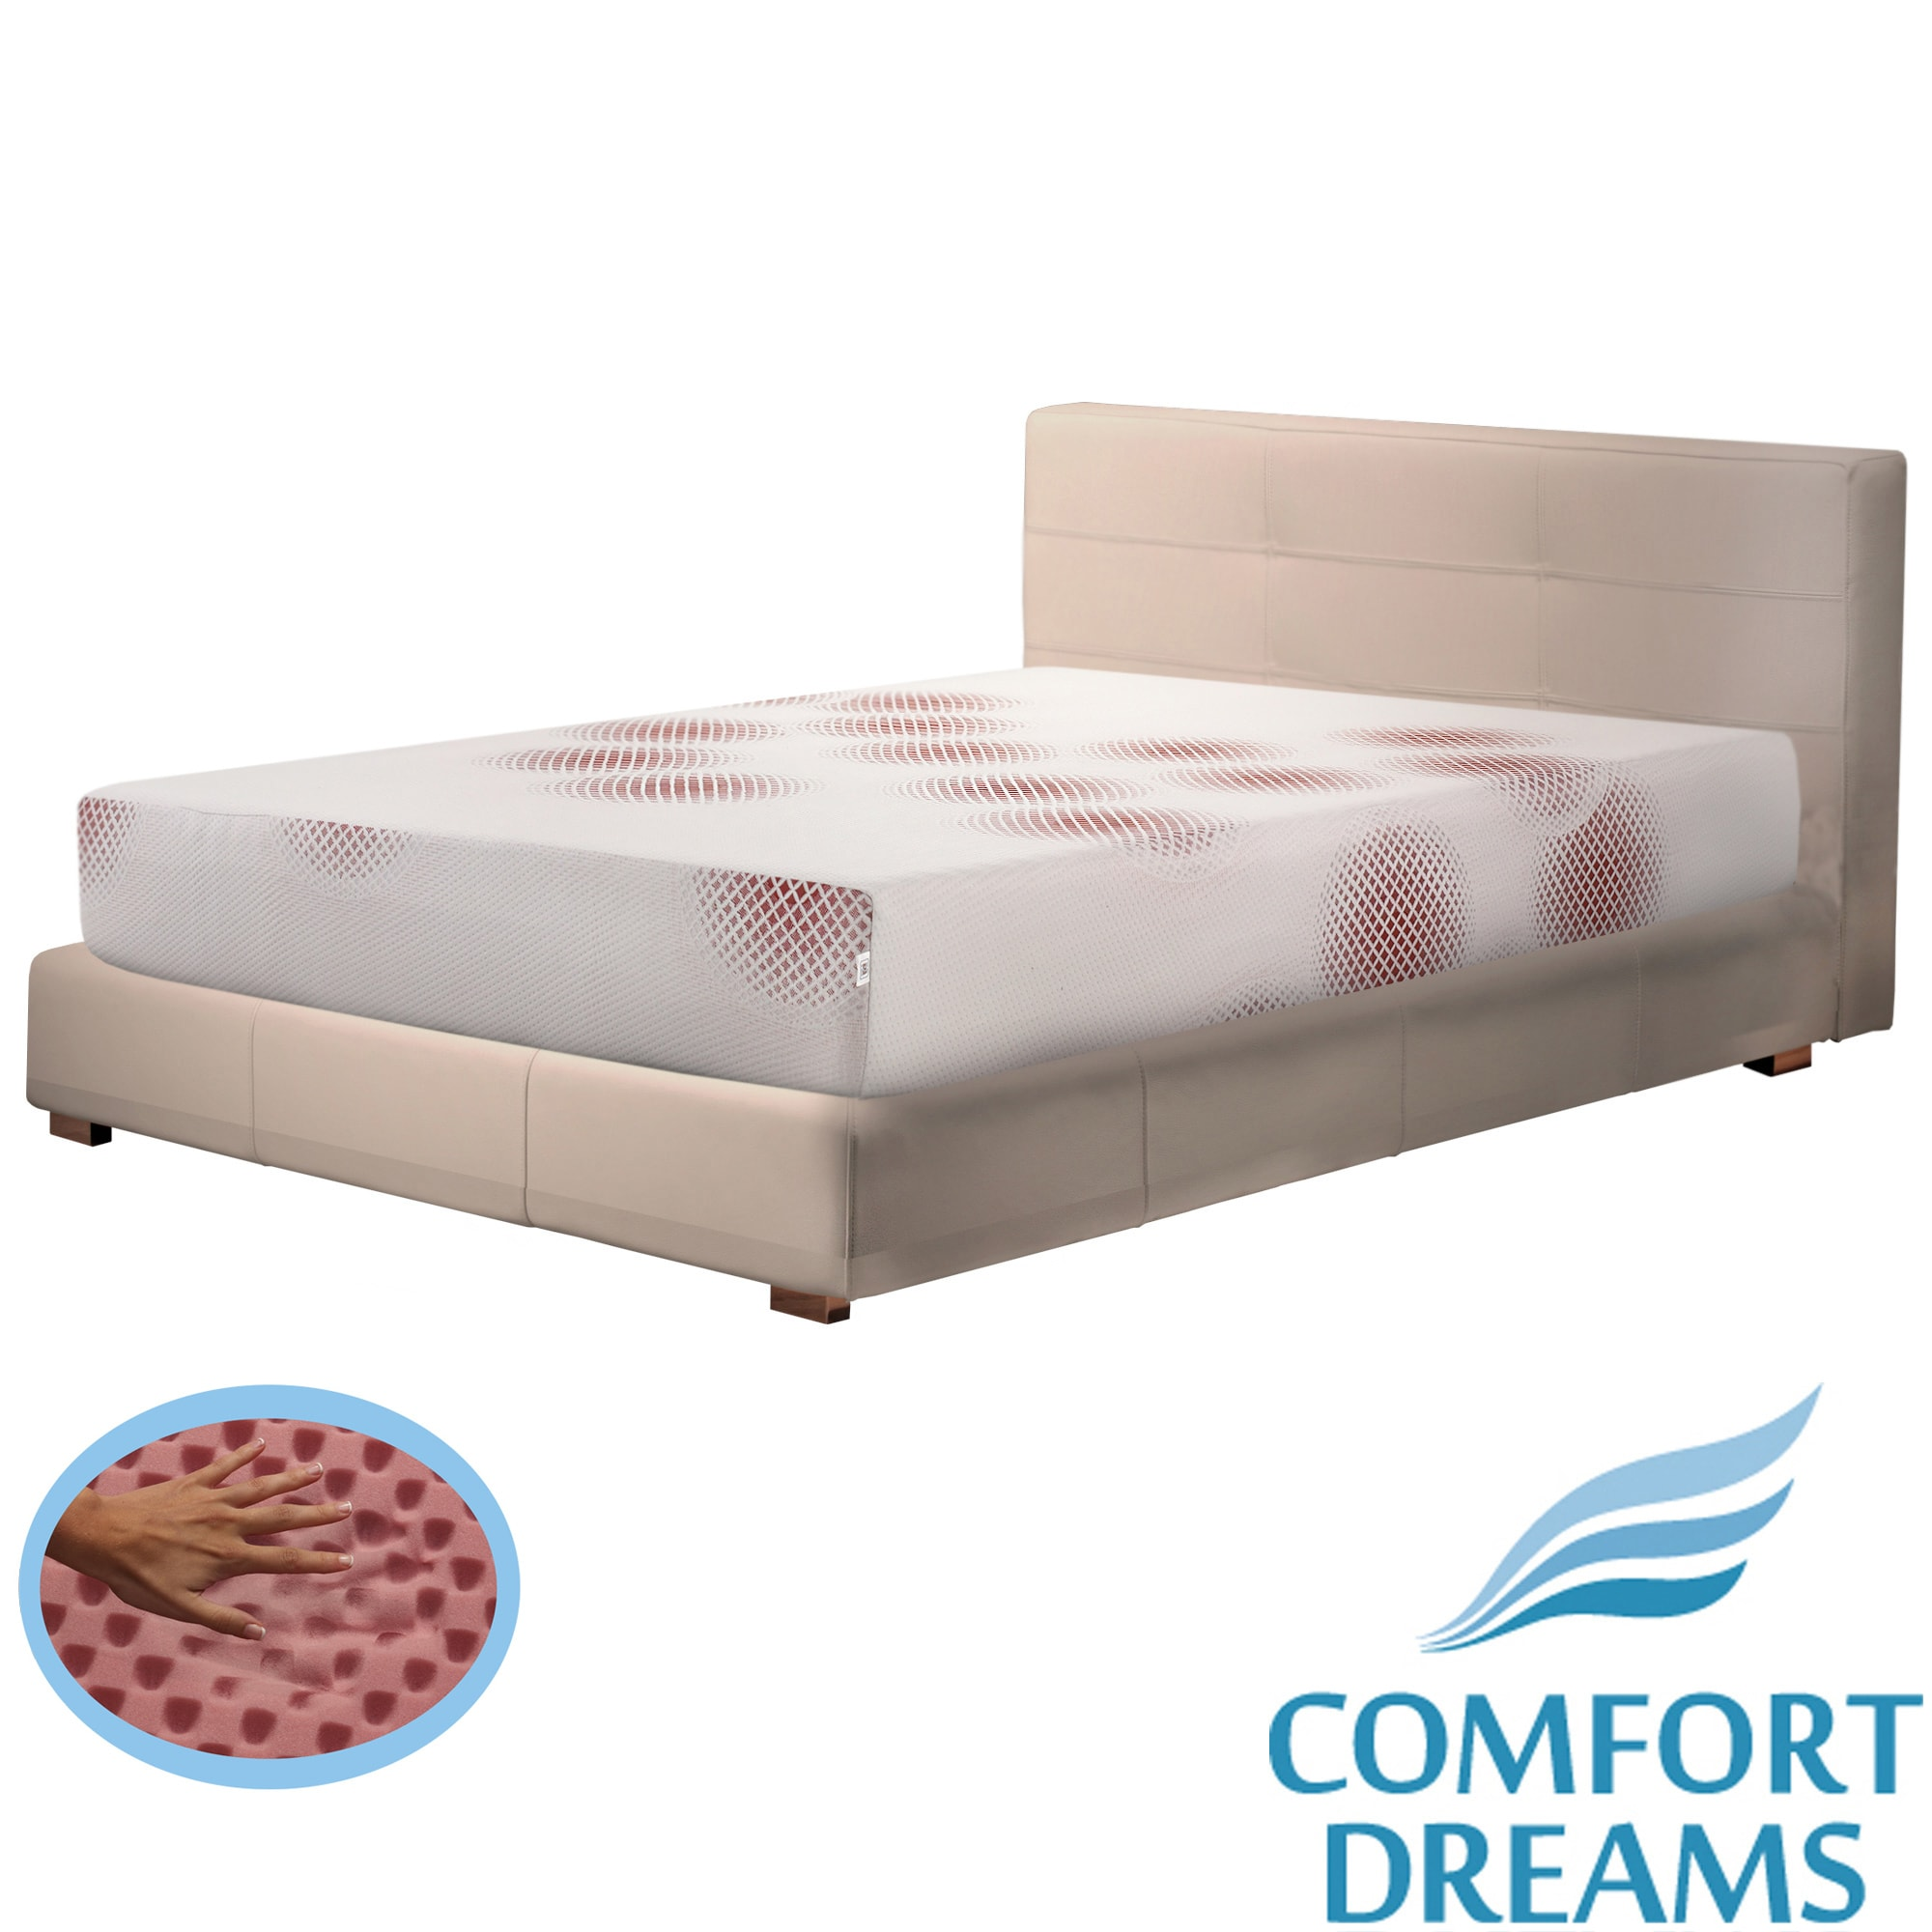 Comfort Dreams Lifestyle Collection Performance 10-inch King-size Memory Foam Mattress at Sears.com